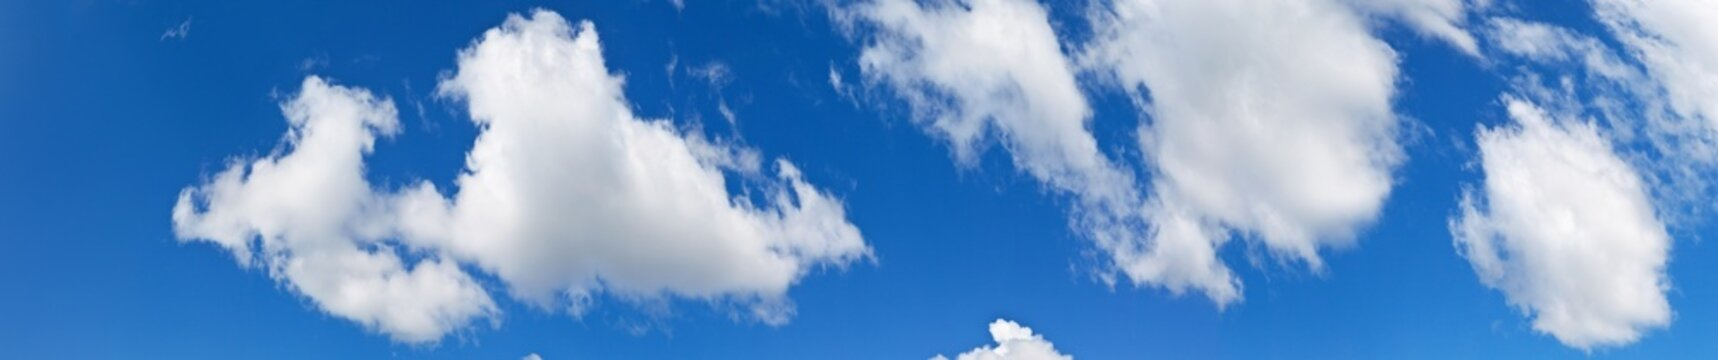 Panoramic view of the blue sky with cumulus clouds on a sunny clear day. White fluffy light clouds float across the blue sky. Heavenly bright landscape. Natural background, banner